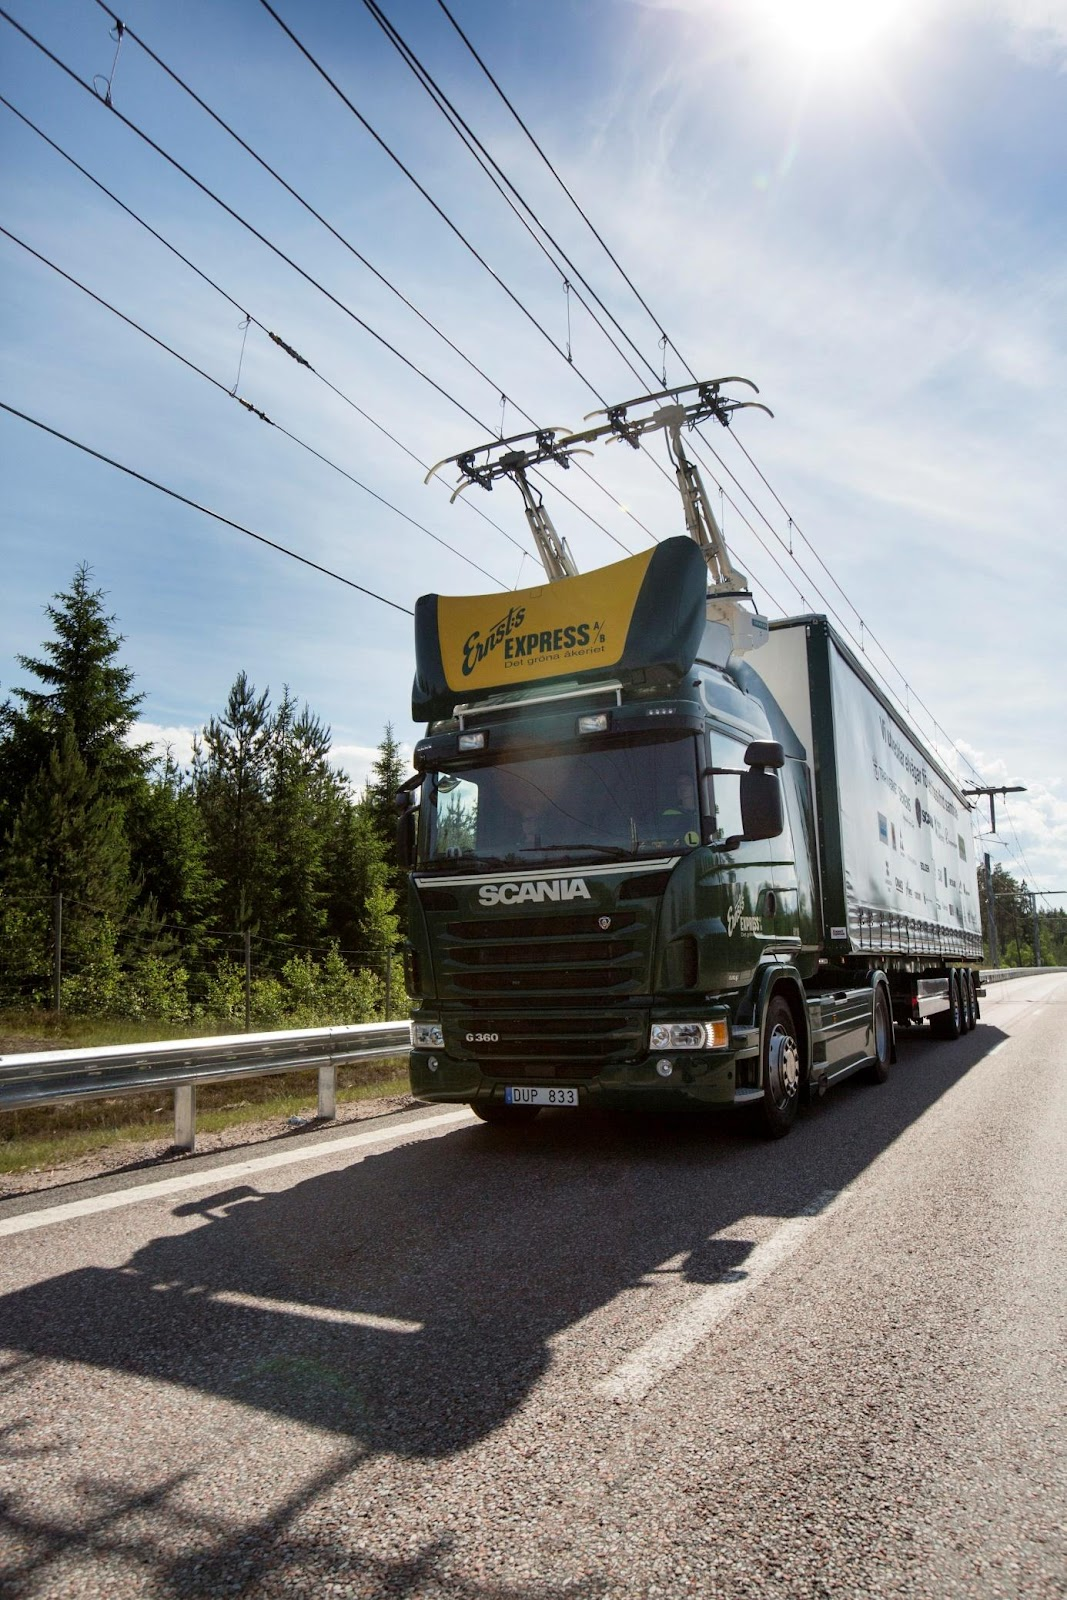 \\DLINK\Volume_1\Archives\Atelier\Route Intelligente\Scania ehighway.jpg